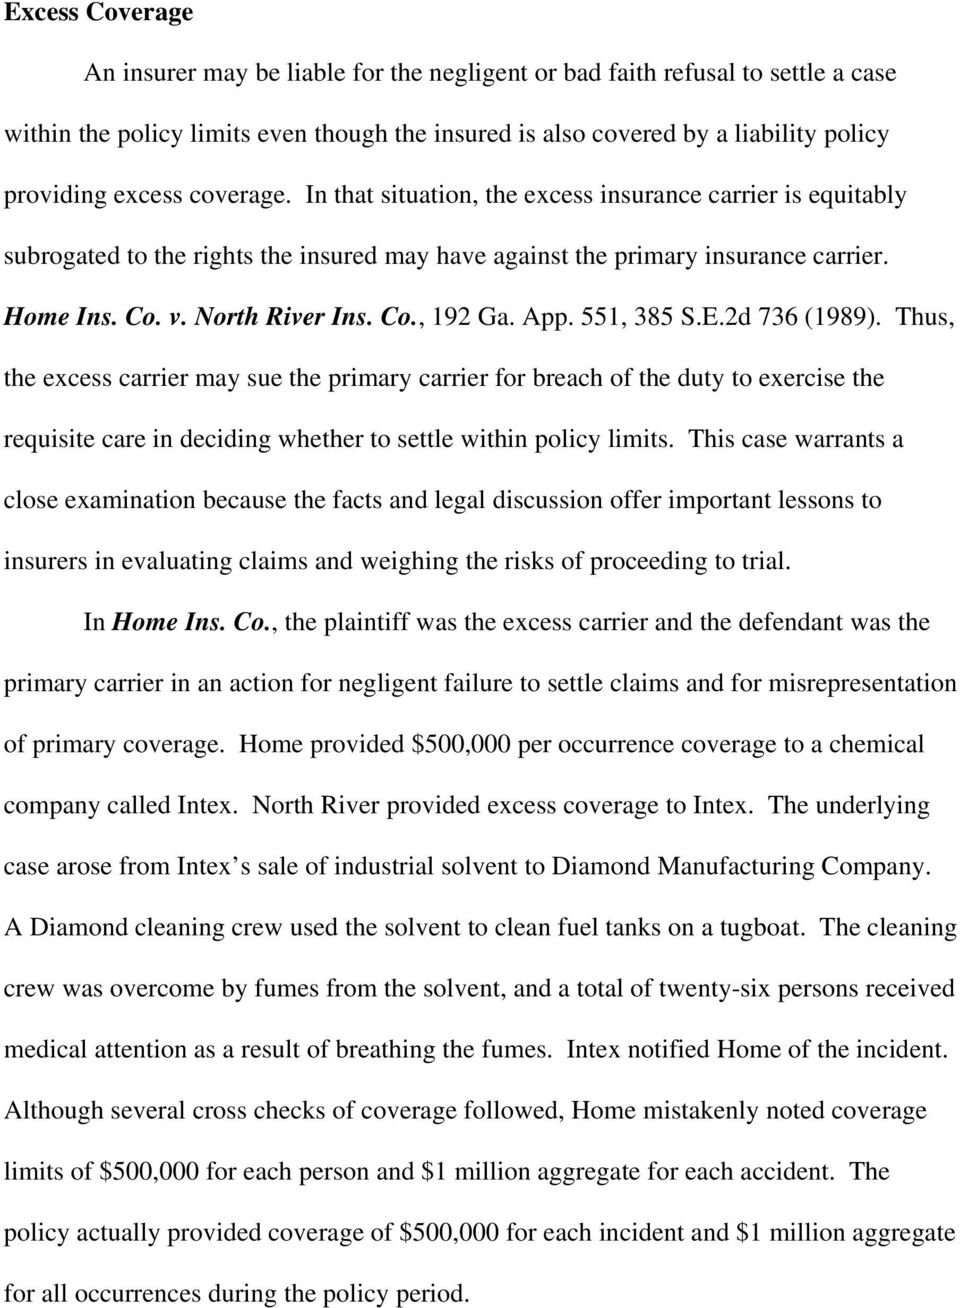 App. 551, 385 S.E.2d 736 (1989). Thus, the excess carrier may sue the primary carrier for breach of the duty to exercise the requisite care in deciding whether to settle within policy limits.